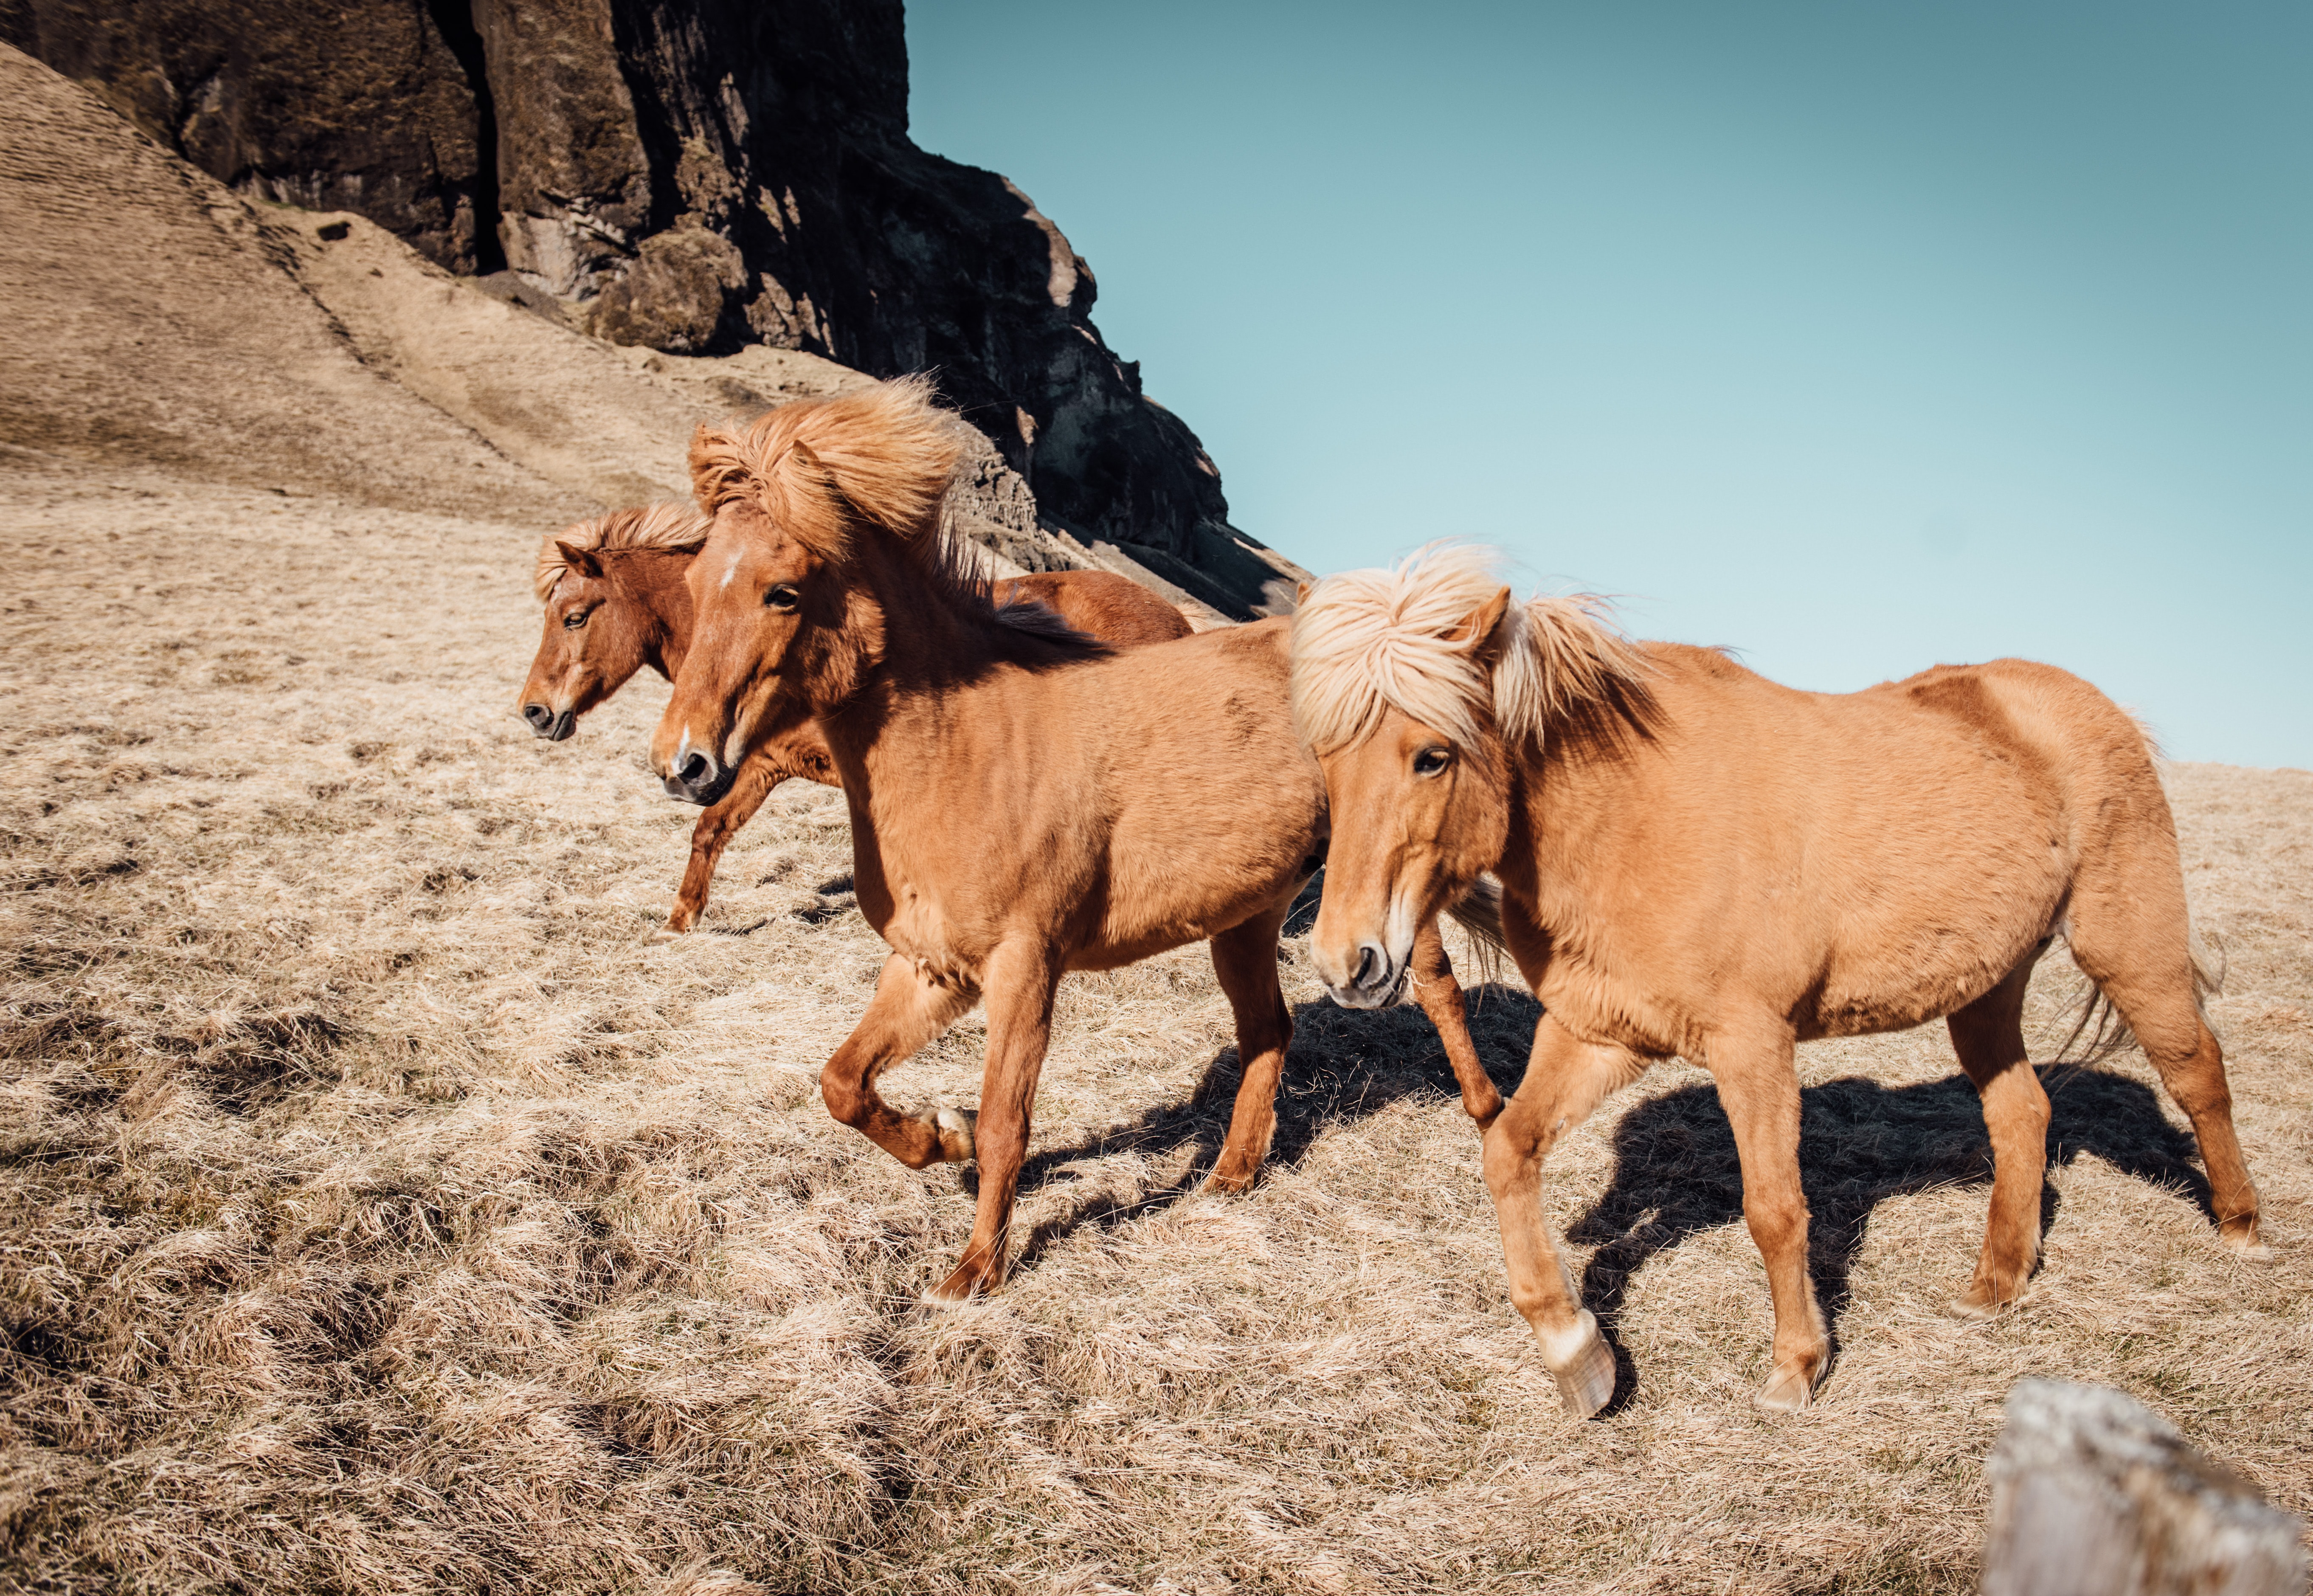 A group of brown ponies running on dry grass at the foot of a rocky hill